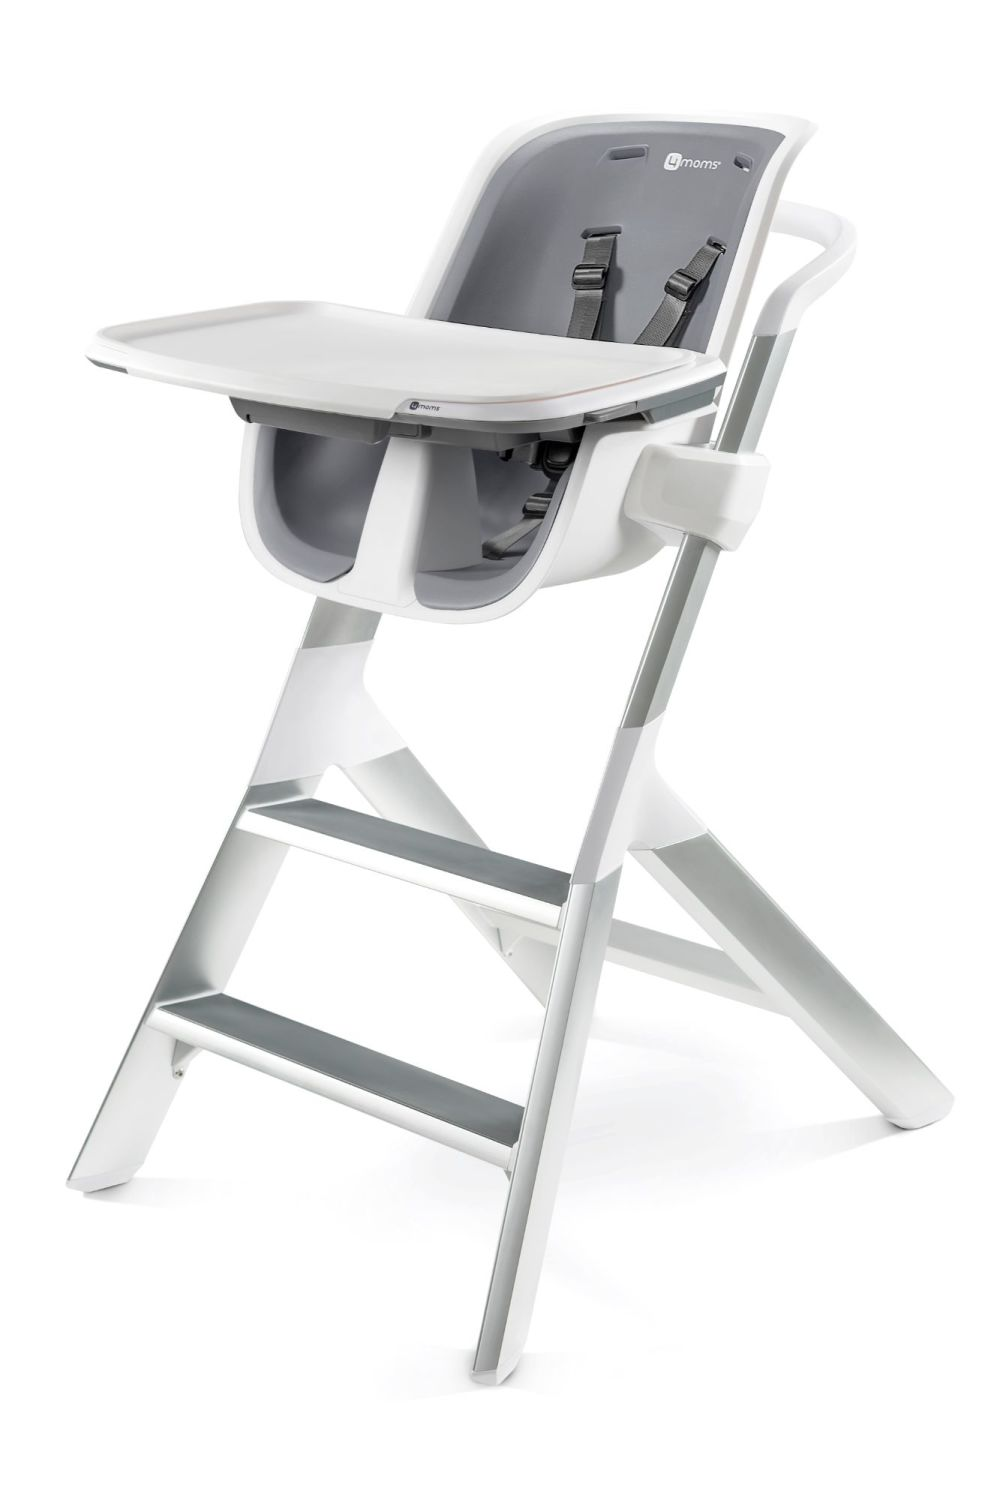 4MOMS High chair 2.1 - White/Grey